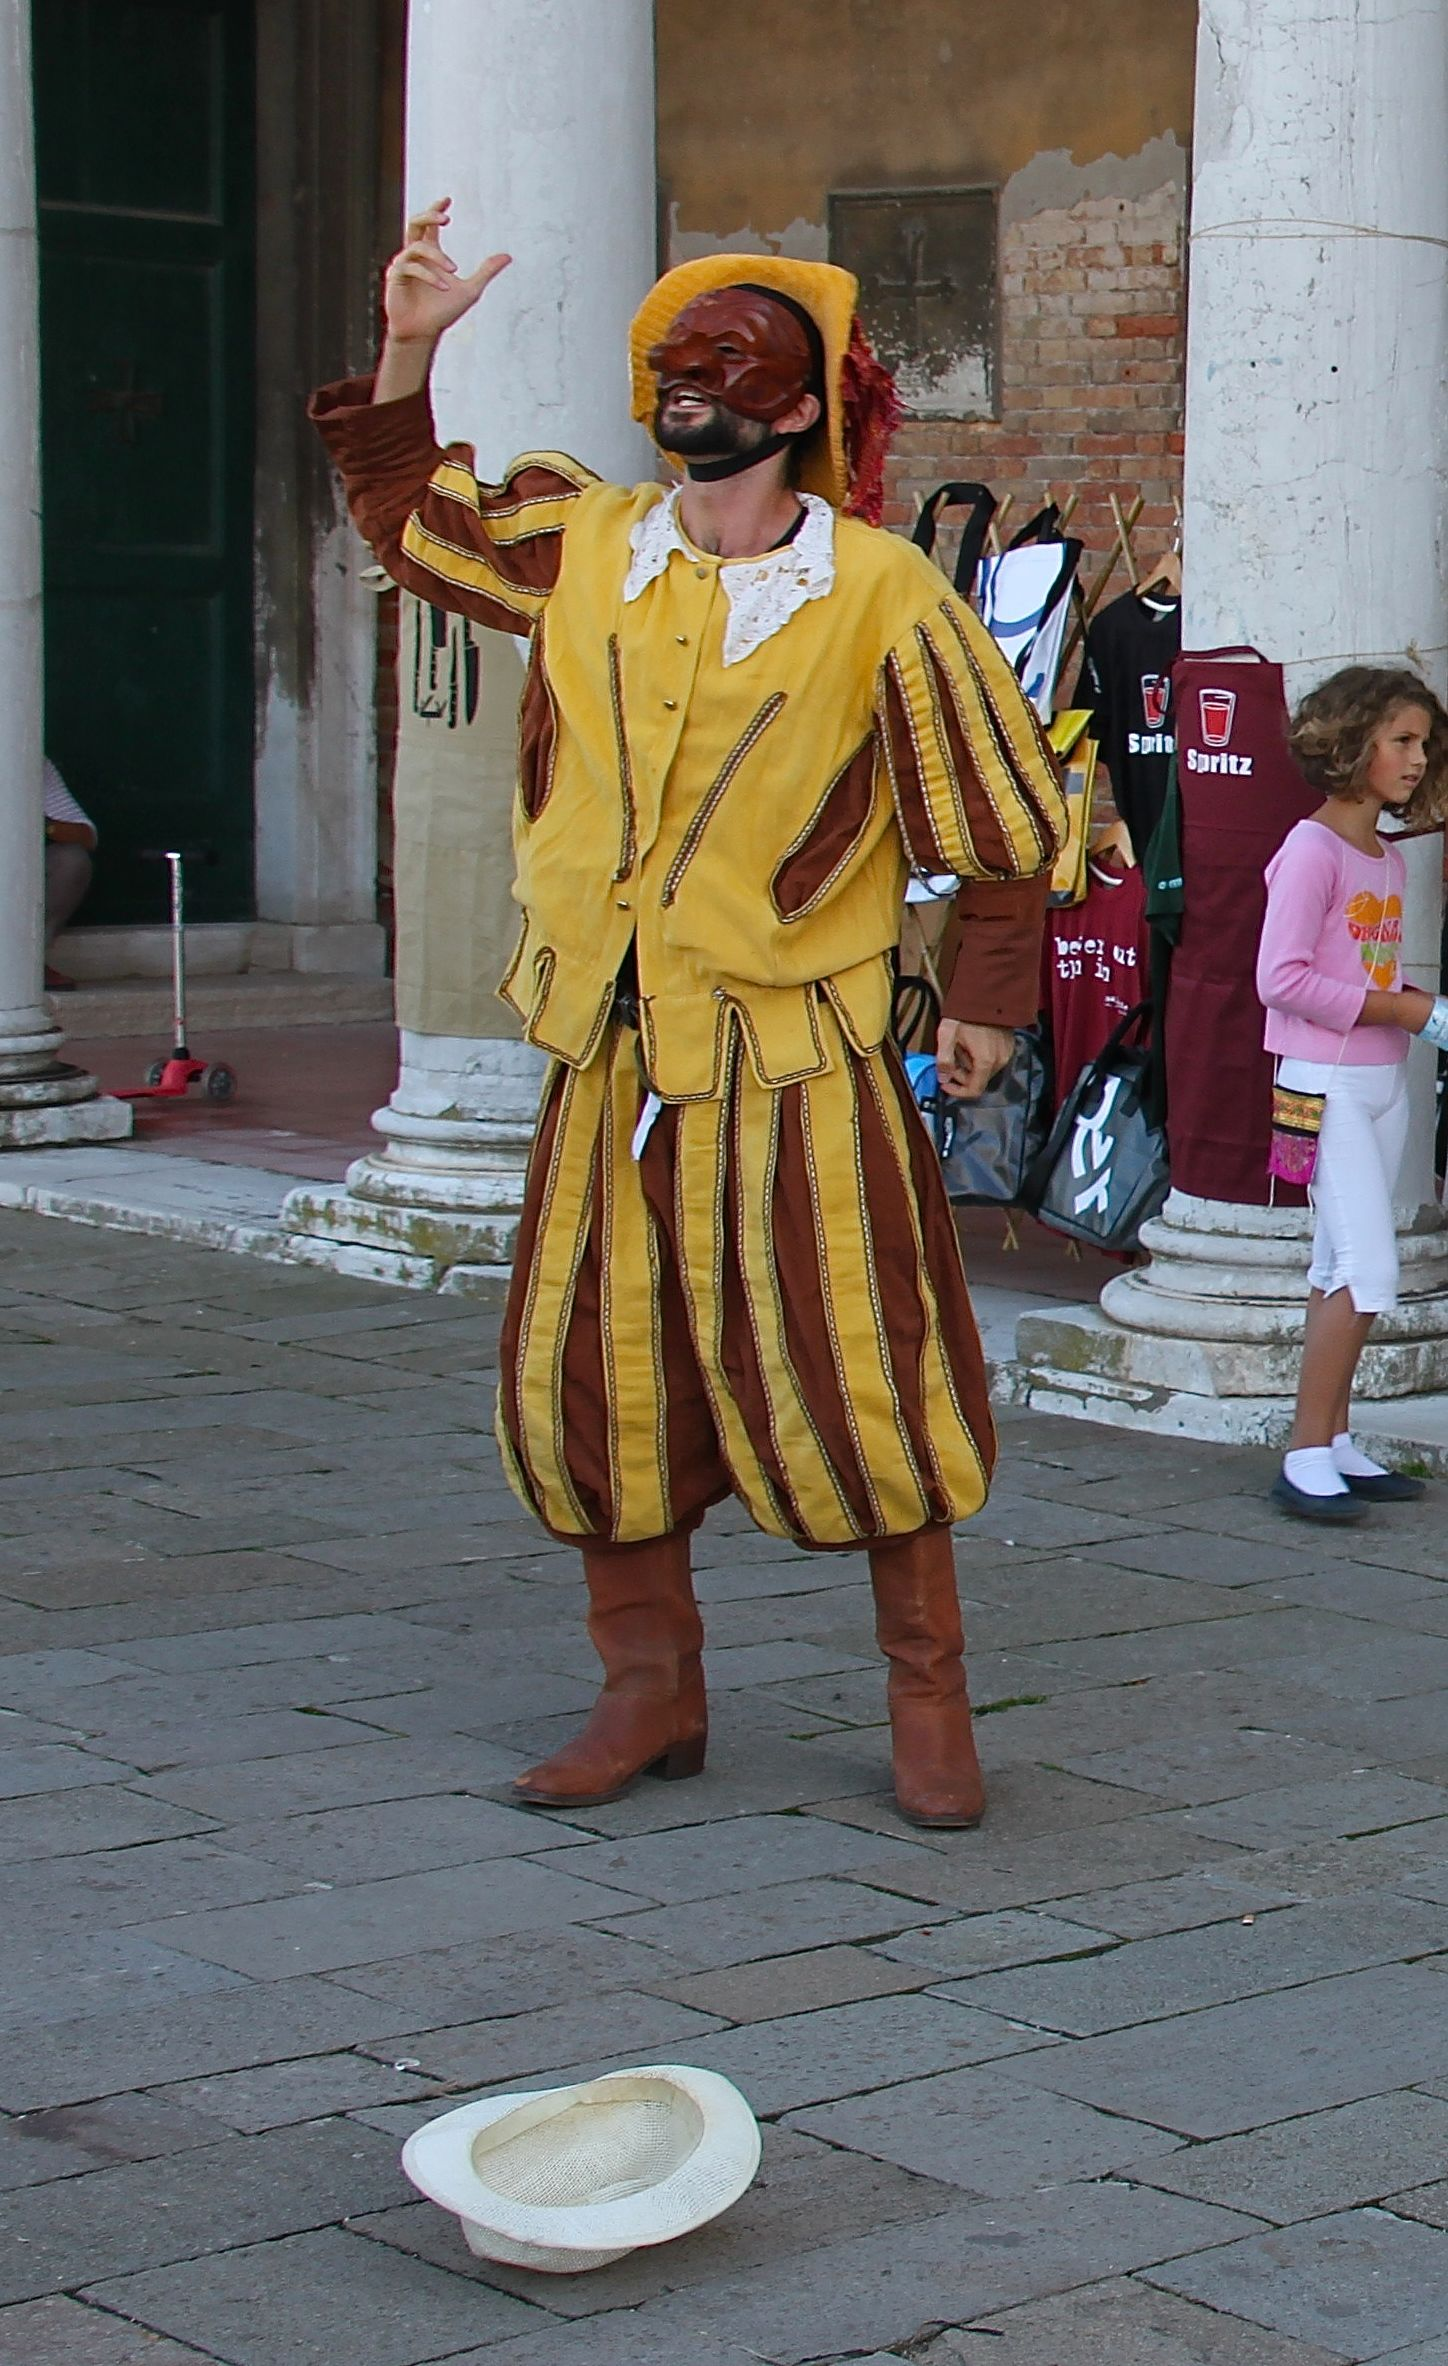 Street actor during Giudecca's arts festival